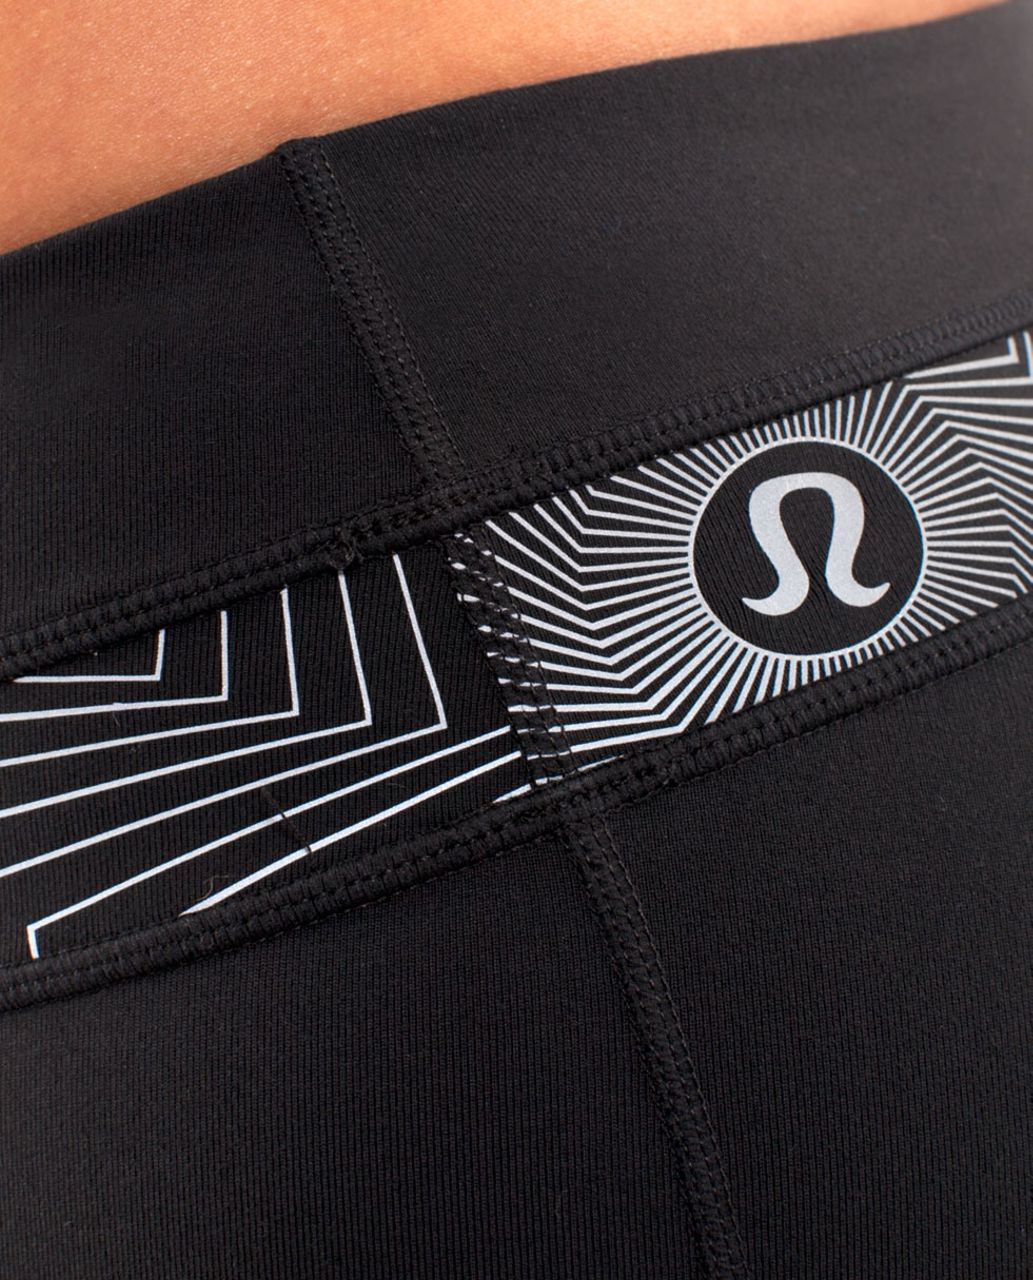 Lululemon Groove Pant (Tall) - Black /  Electric Shock Reflective